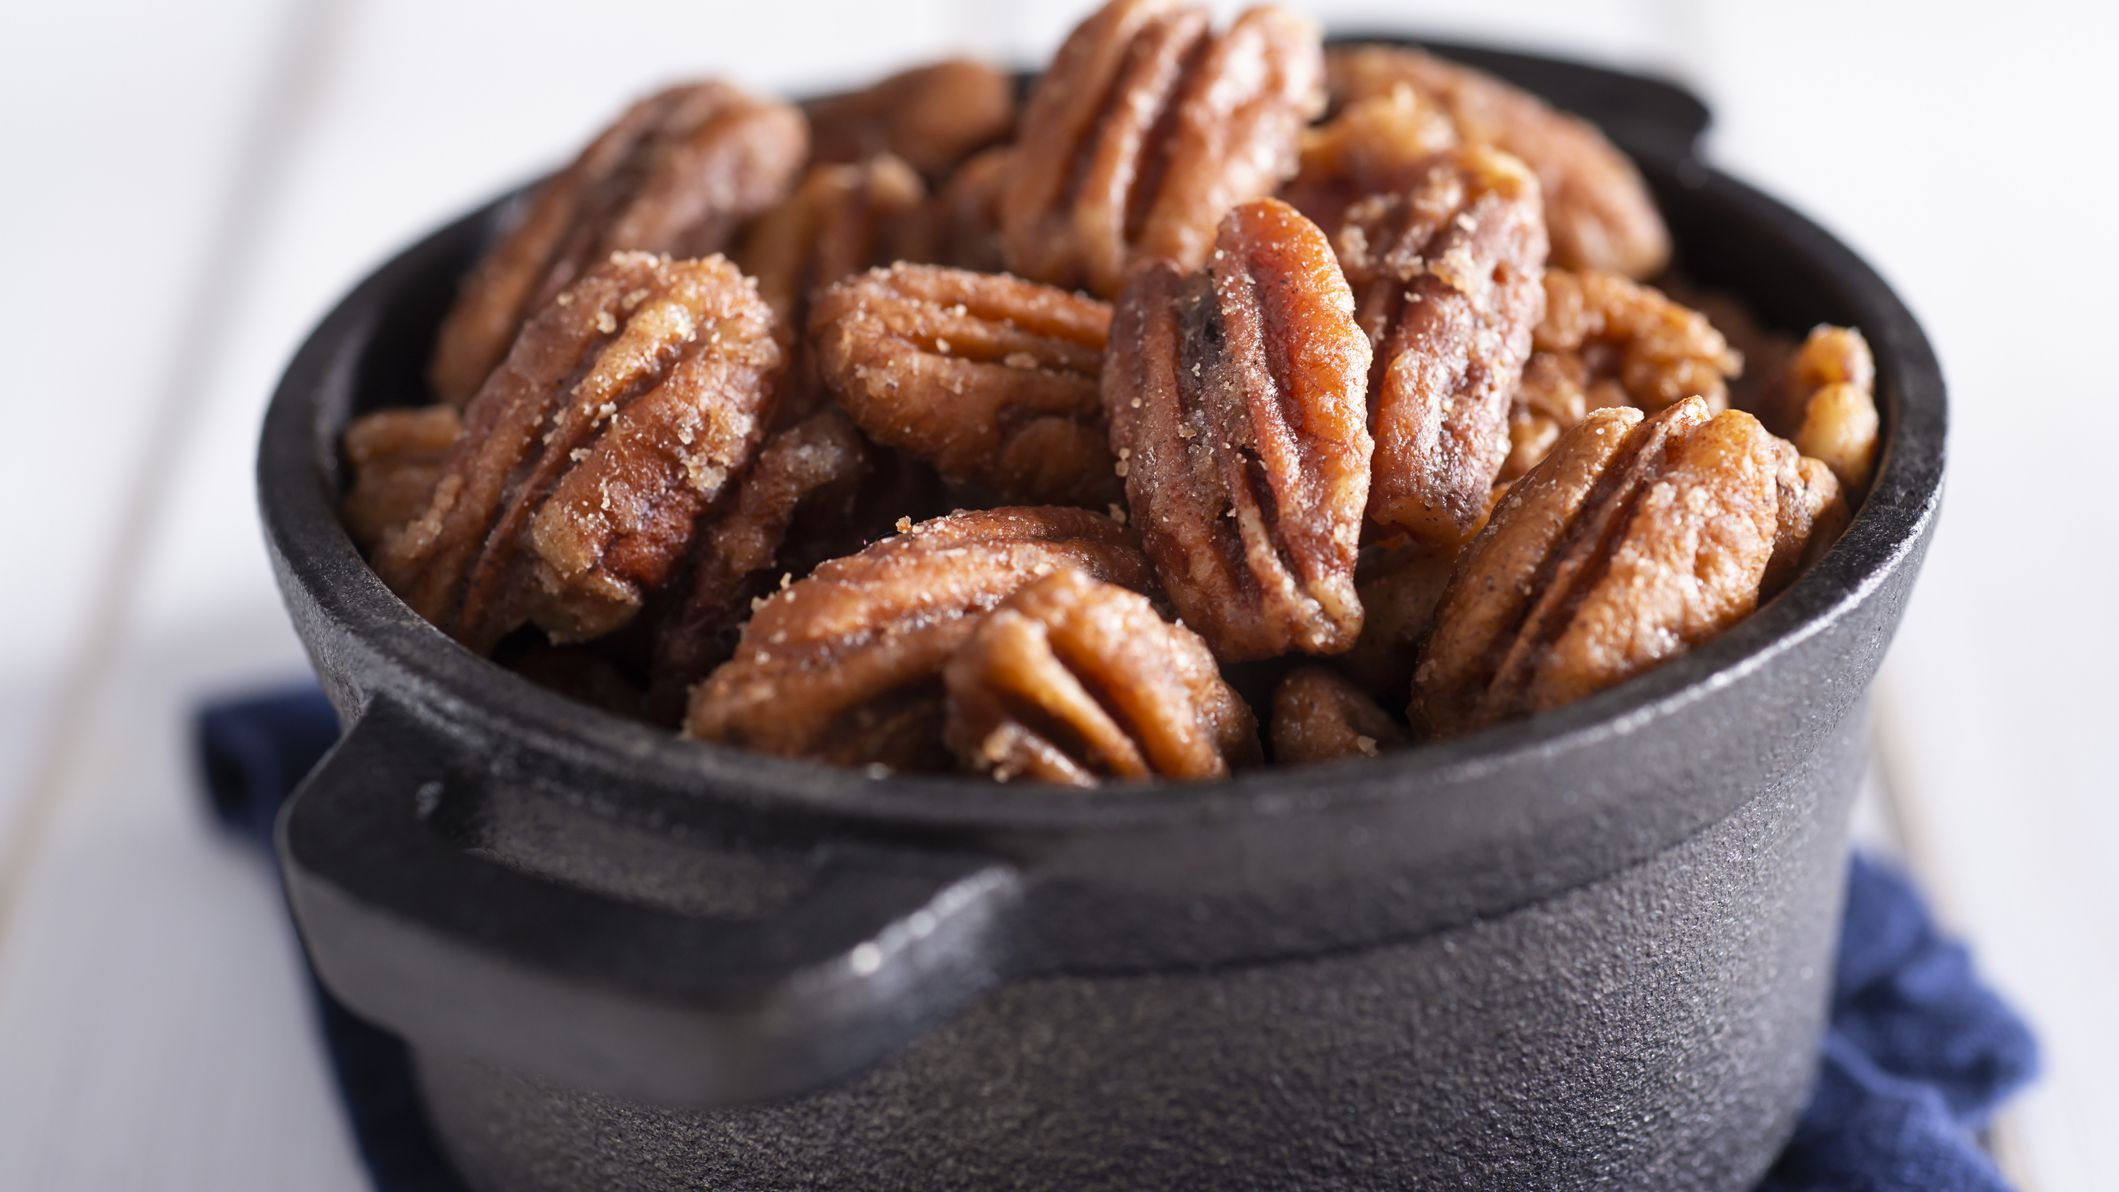 10 Caramelized and Candied Nut Recipes